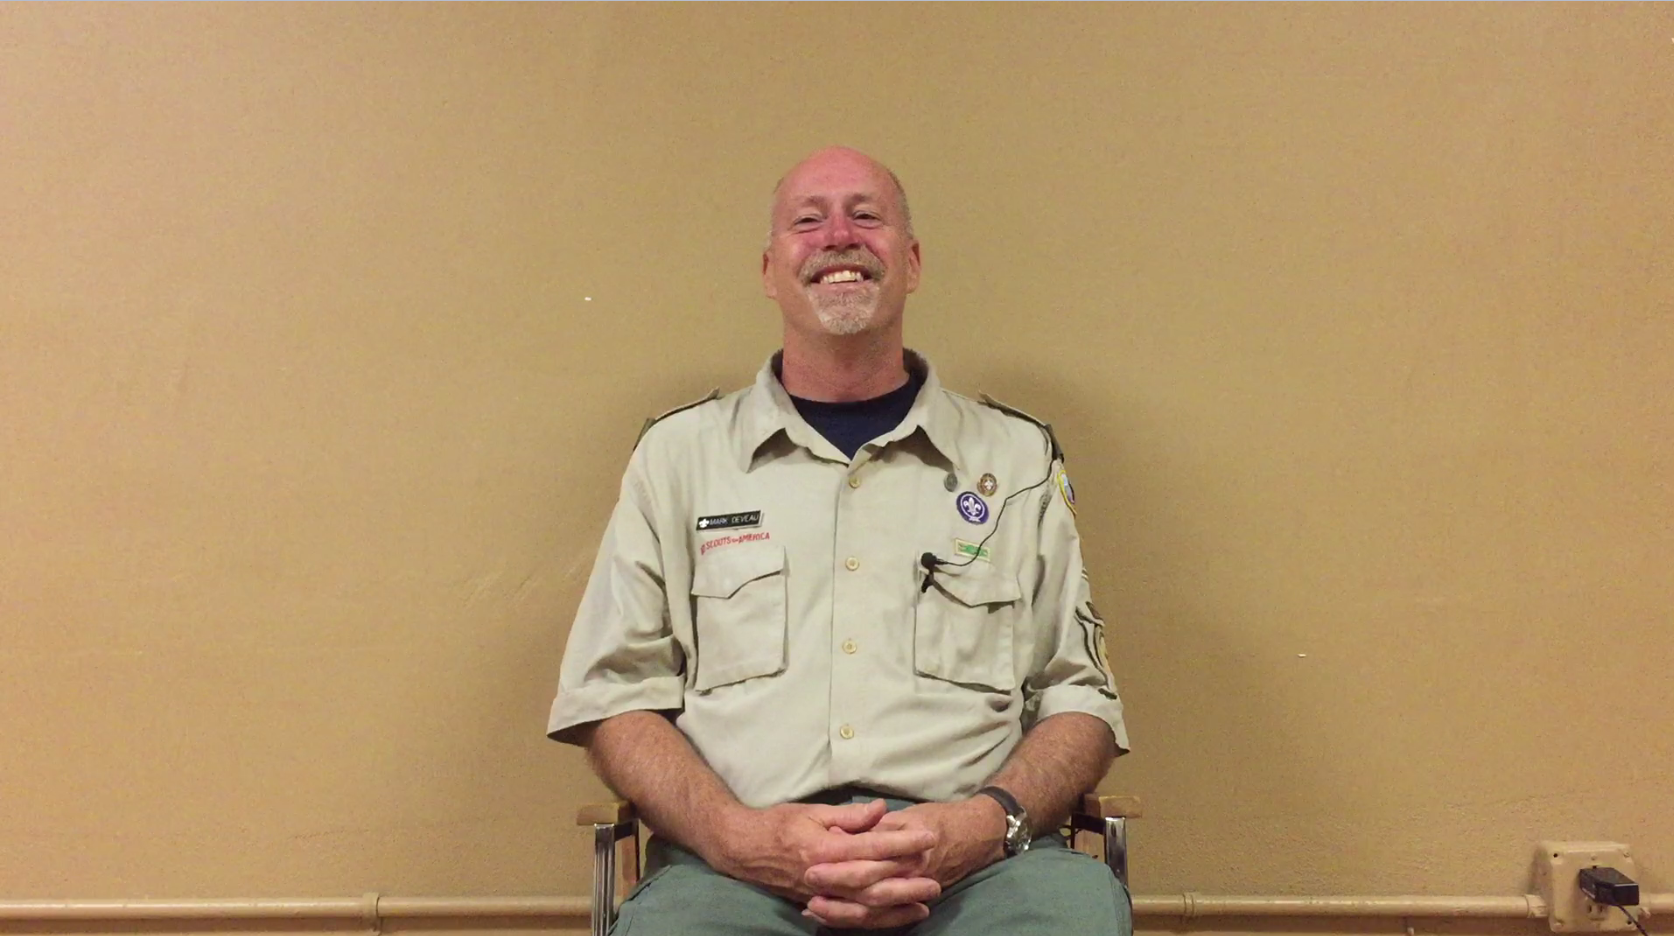 Scoutmaster Mark Deveau